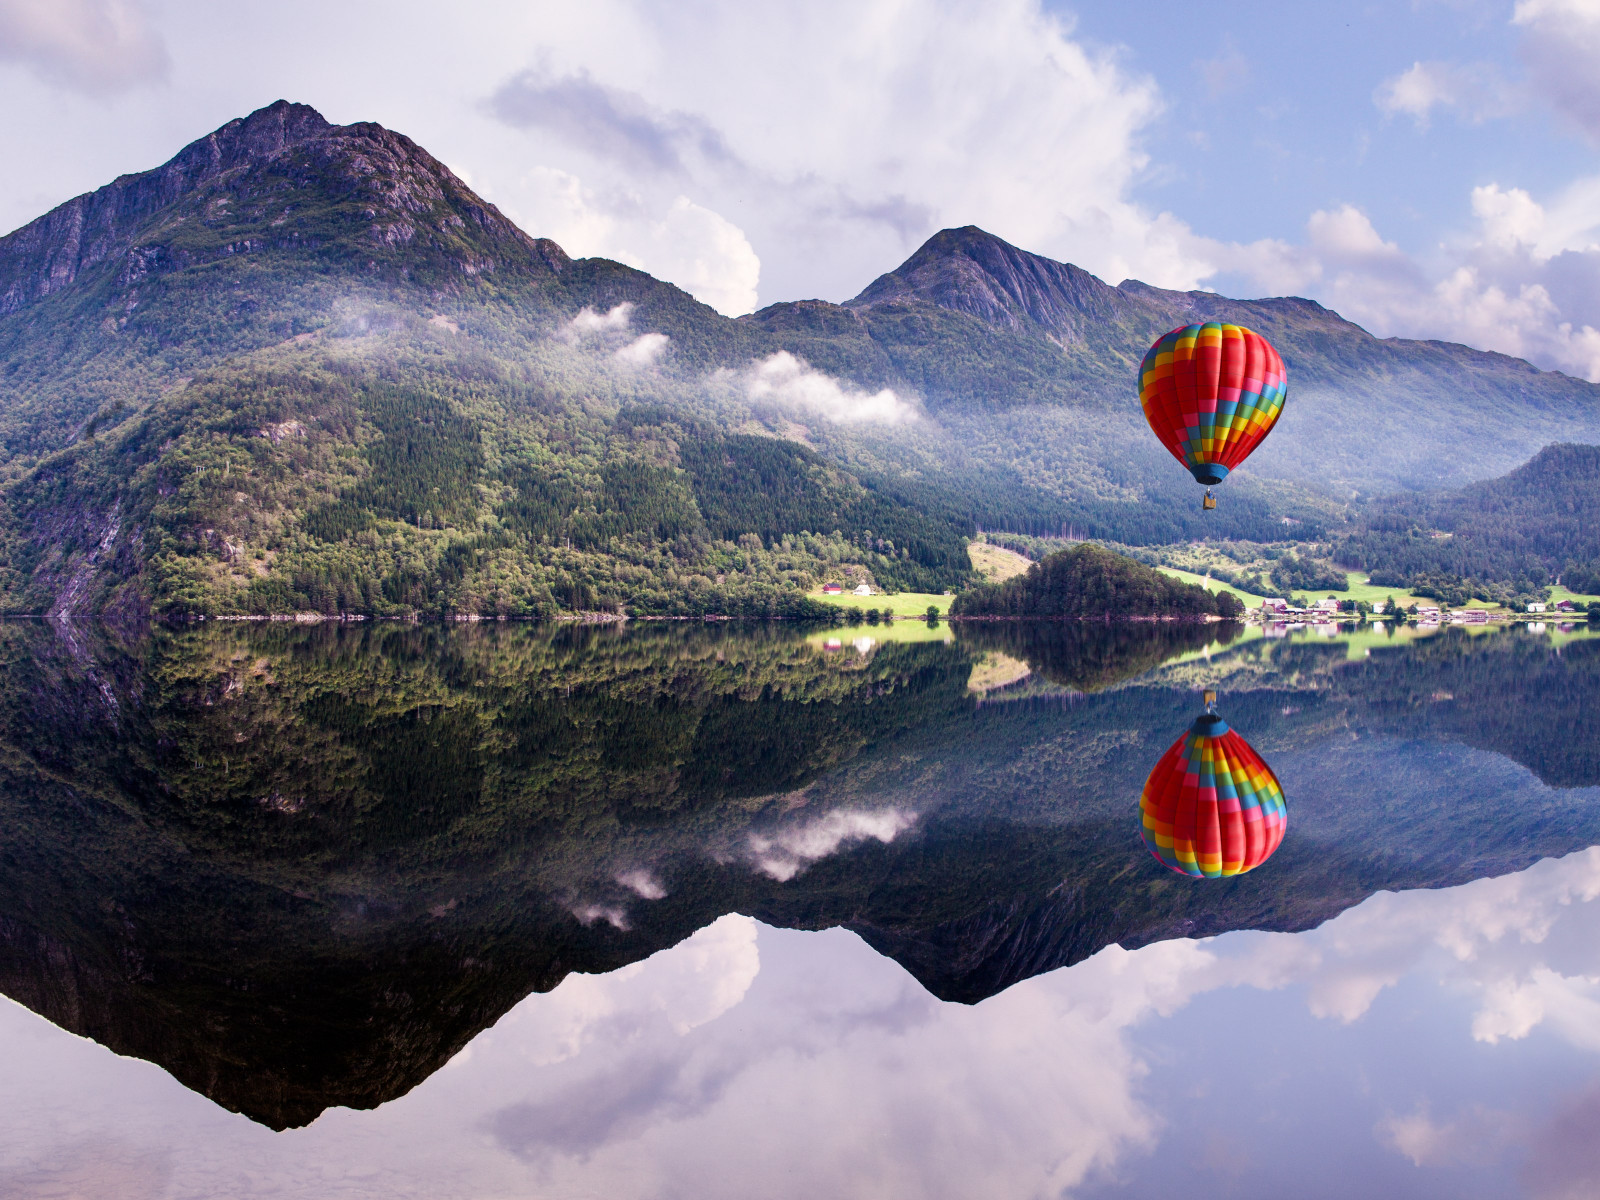 Fly in a hot air balloon wallpaper 1600x1200